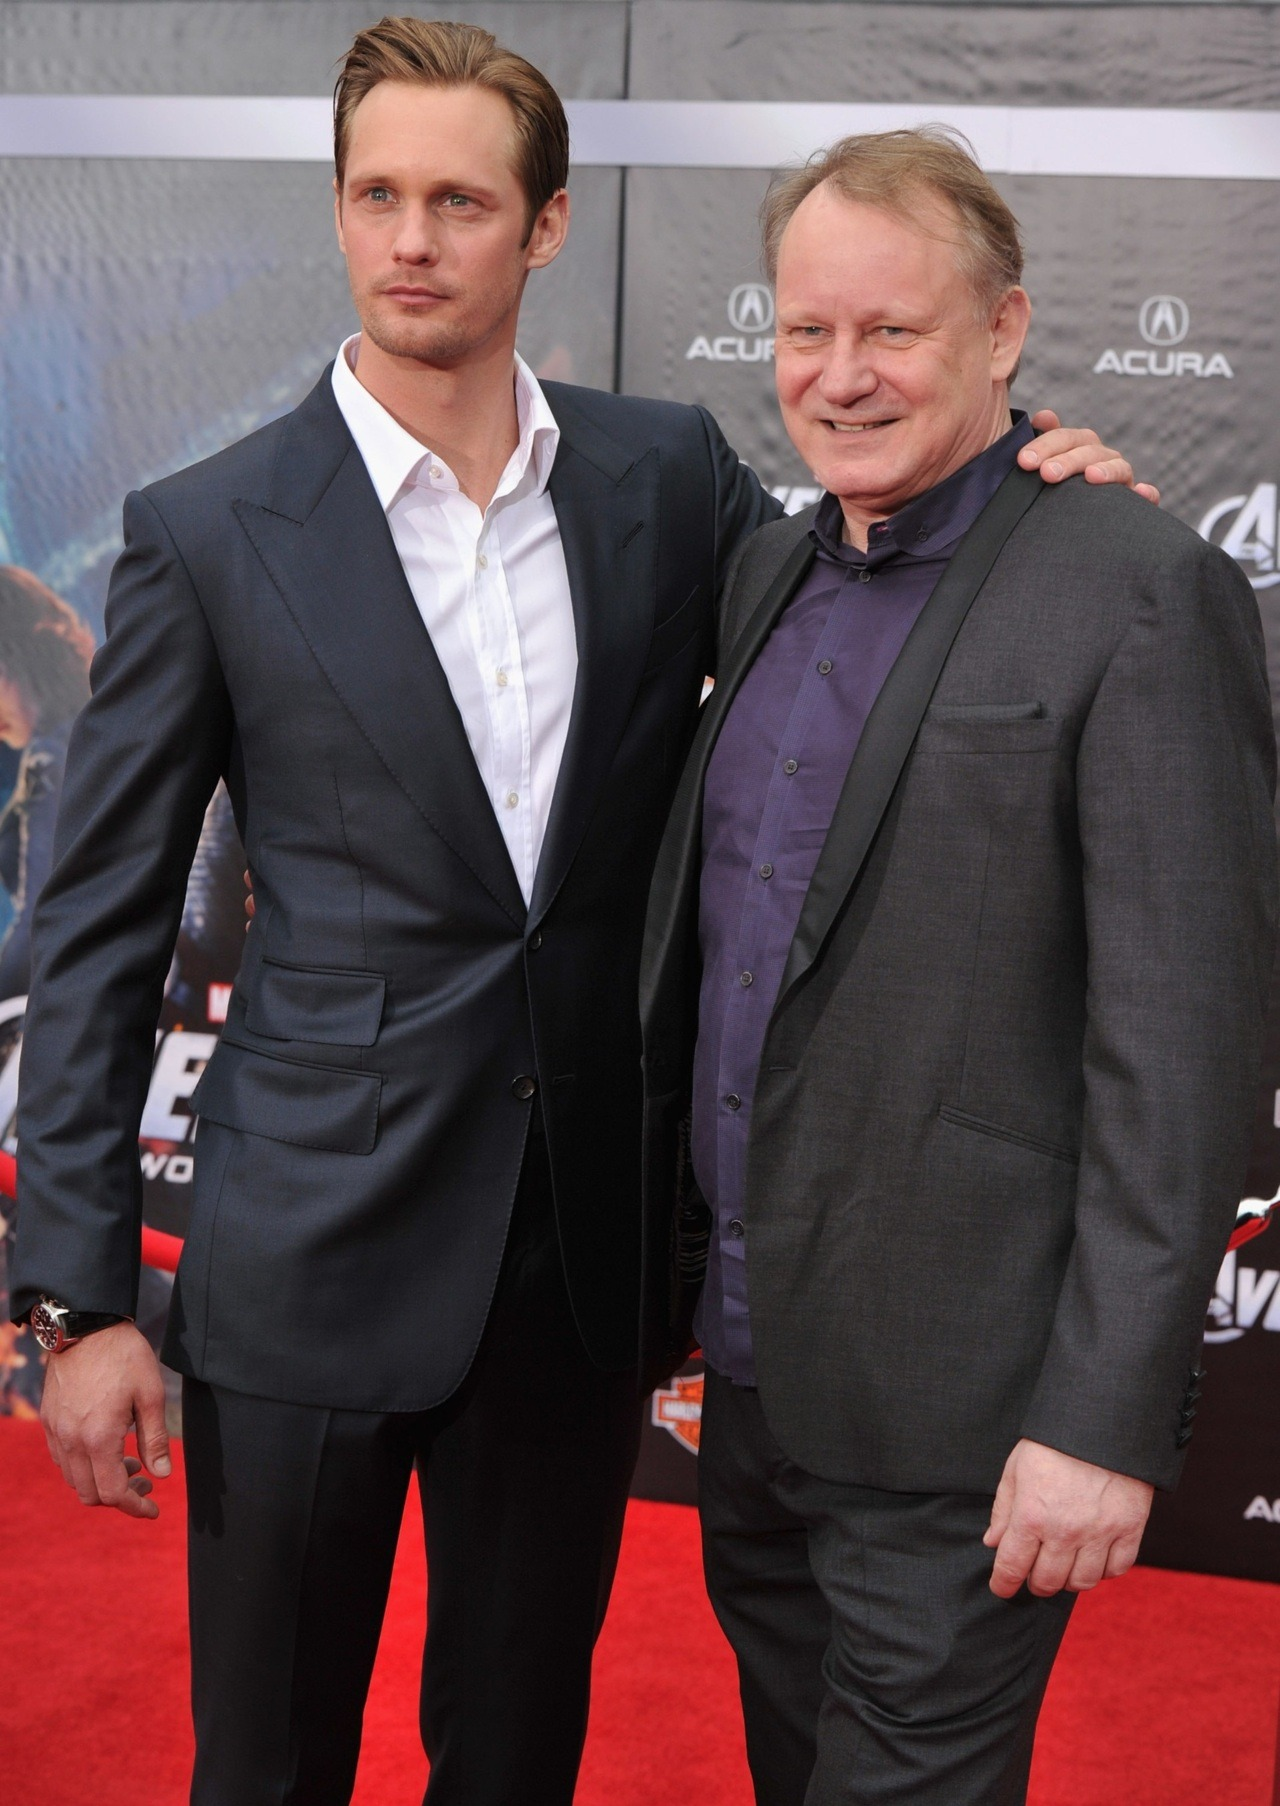 suicideblonde:  Alexander and Stellan Skarsgard at the LA premiere of The Avengers, April 11th Double your Skarsgard pleasure!!  God I love Swedes.